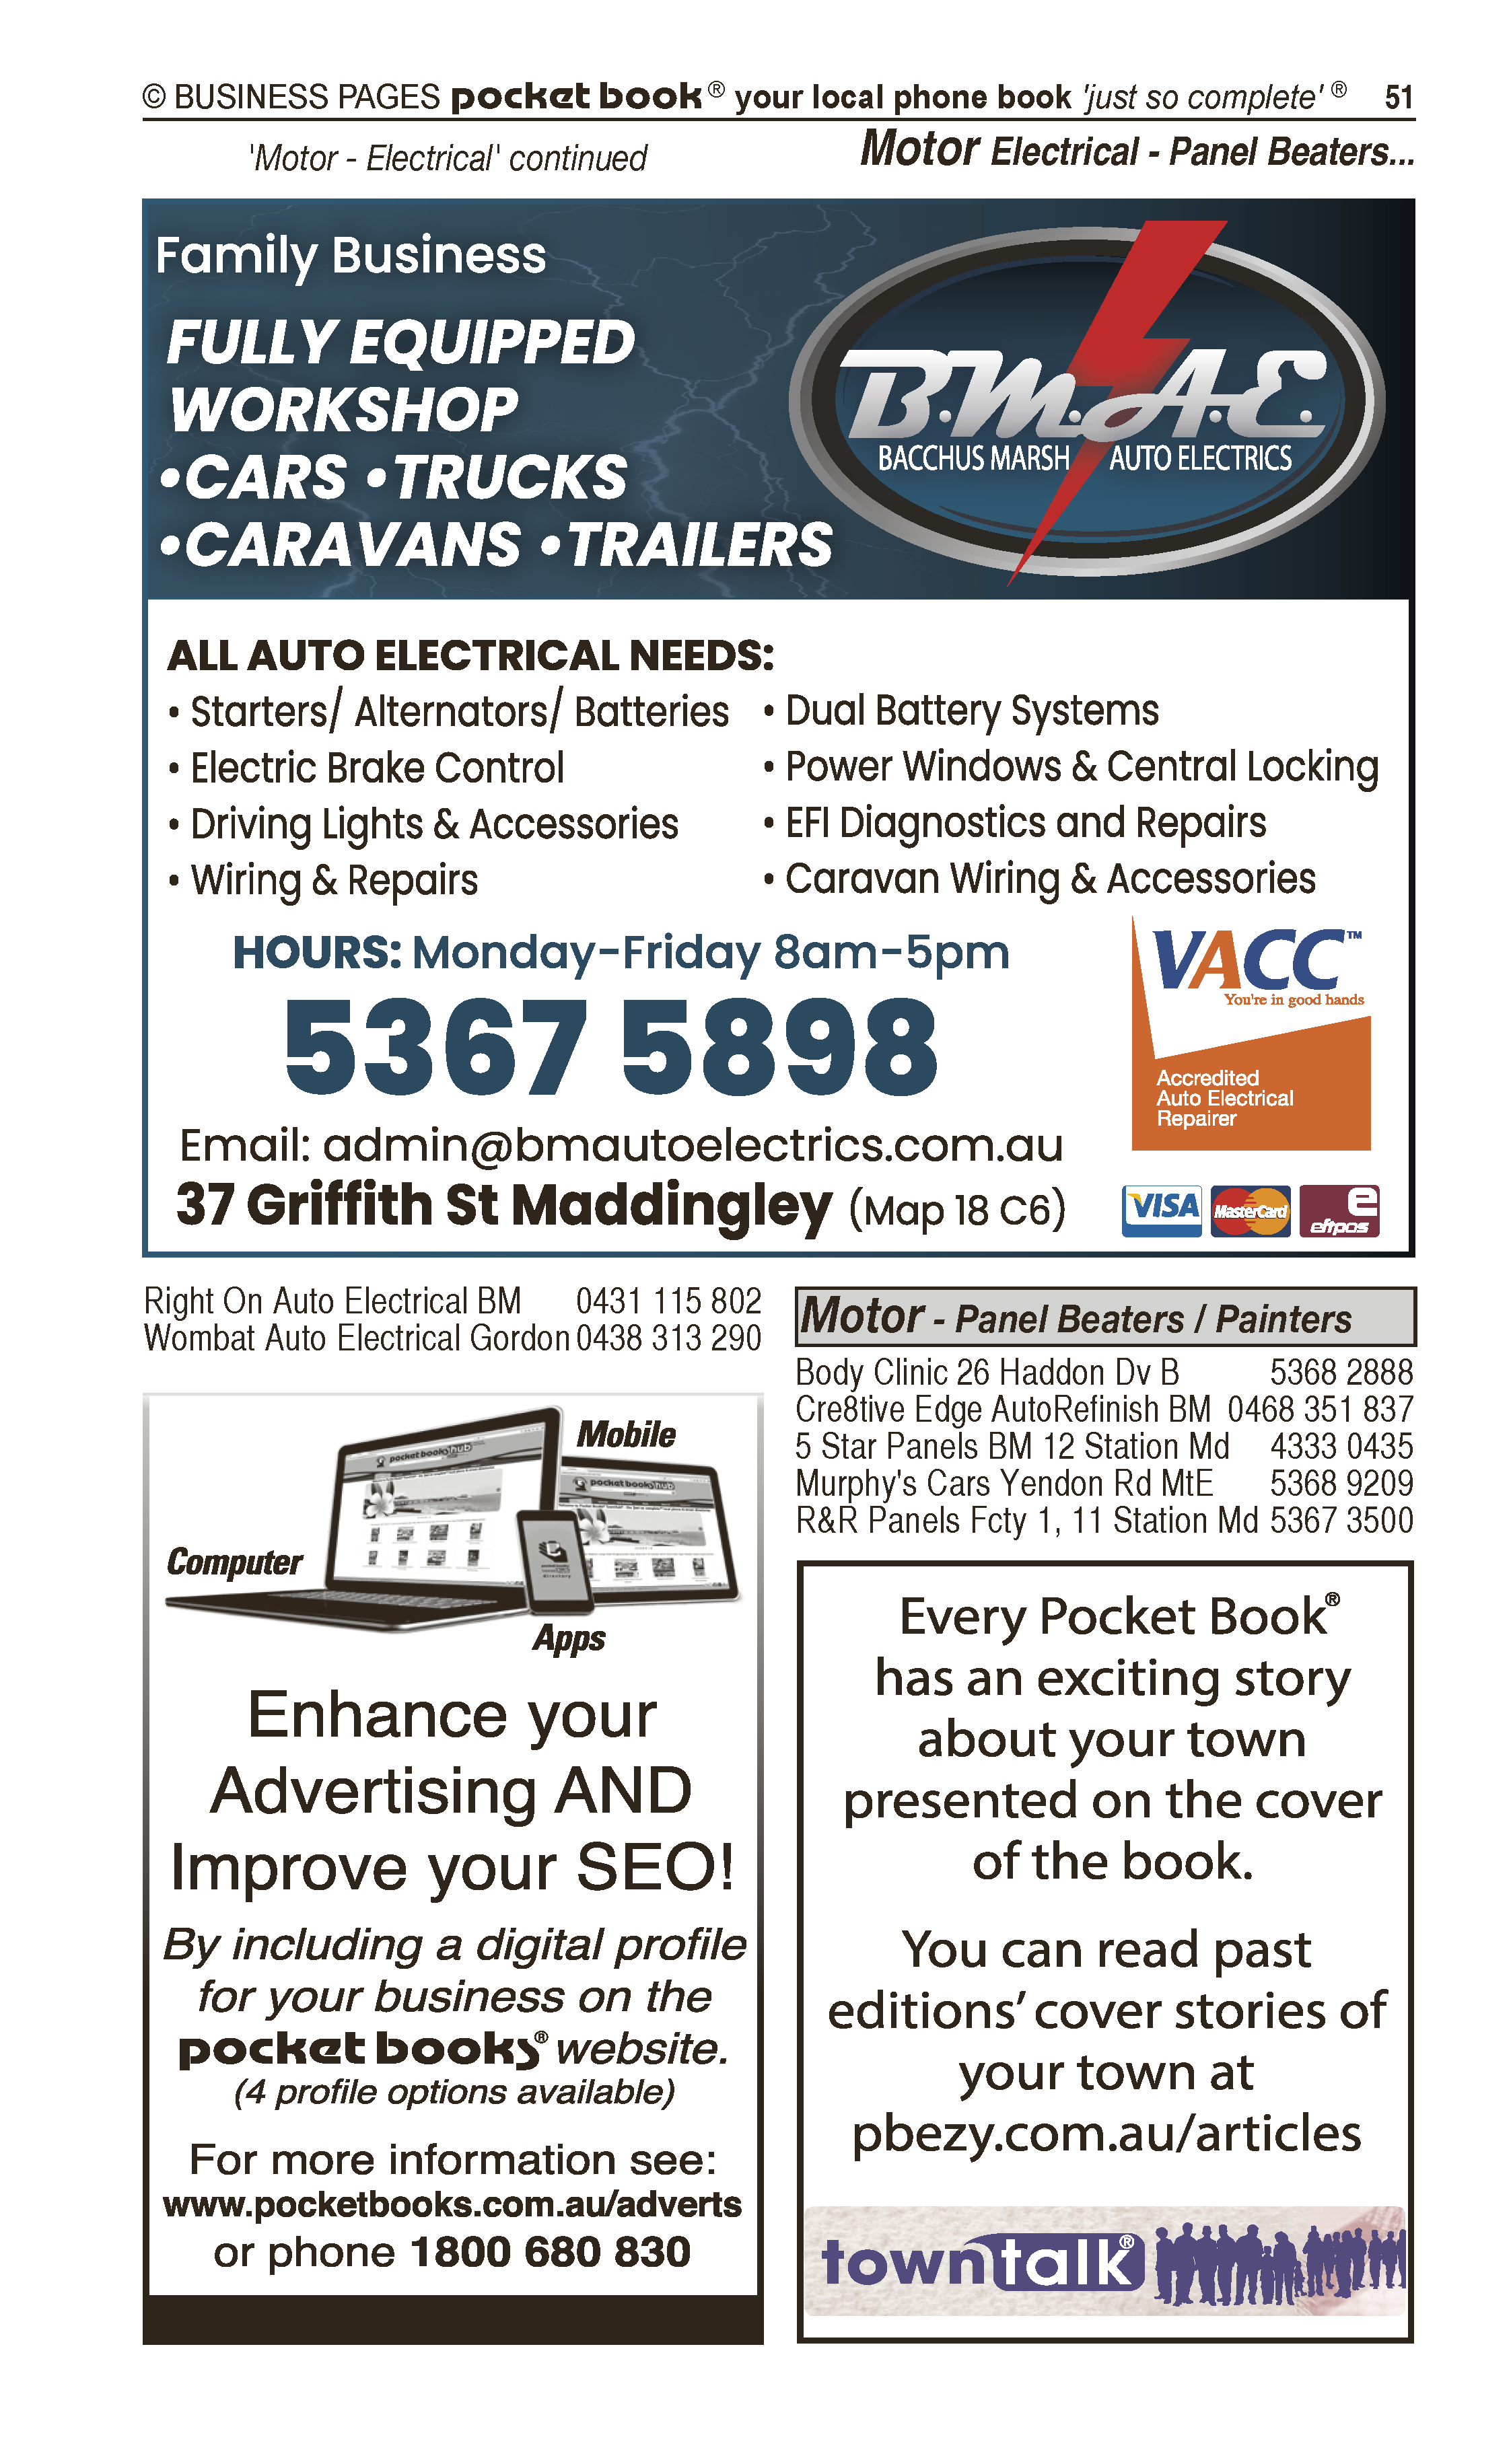 Hemp Decorticator in Ballan VIC - page 51